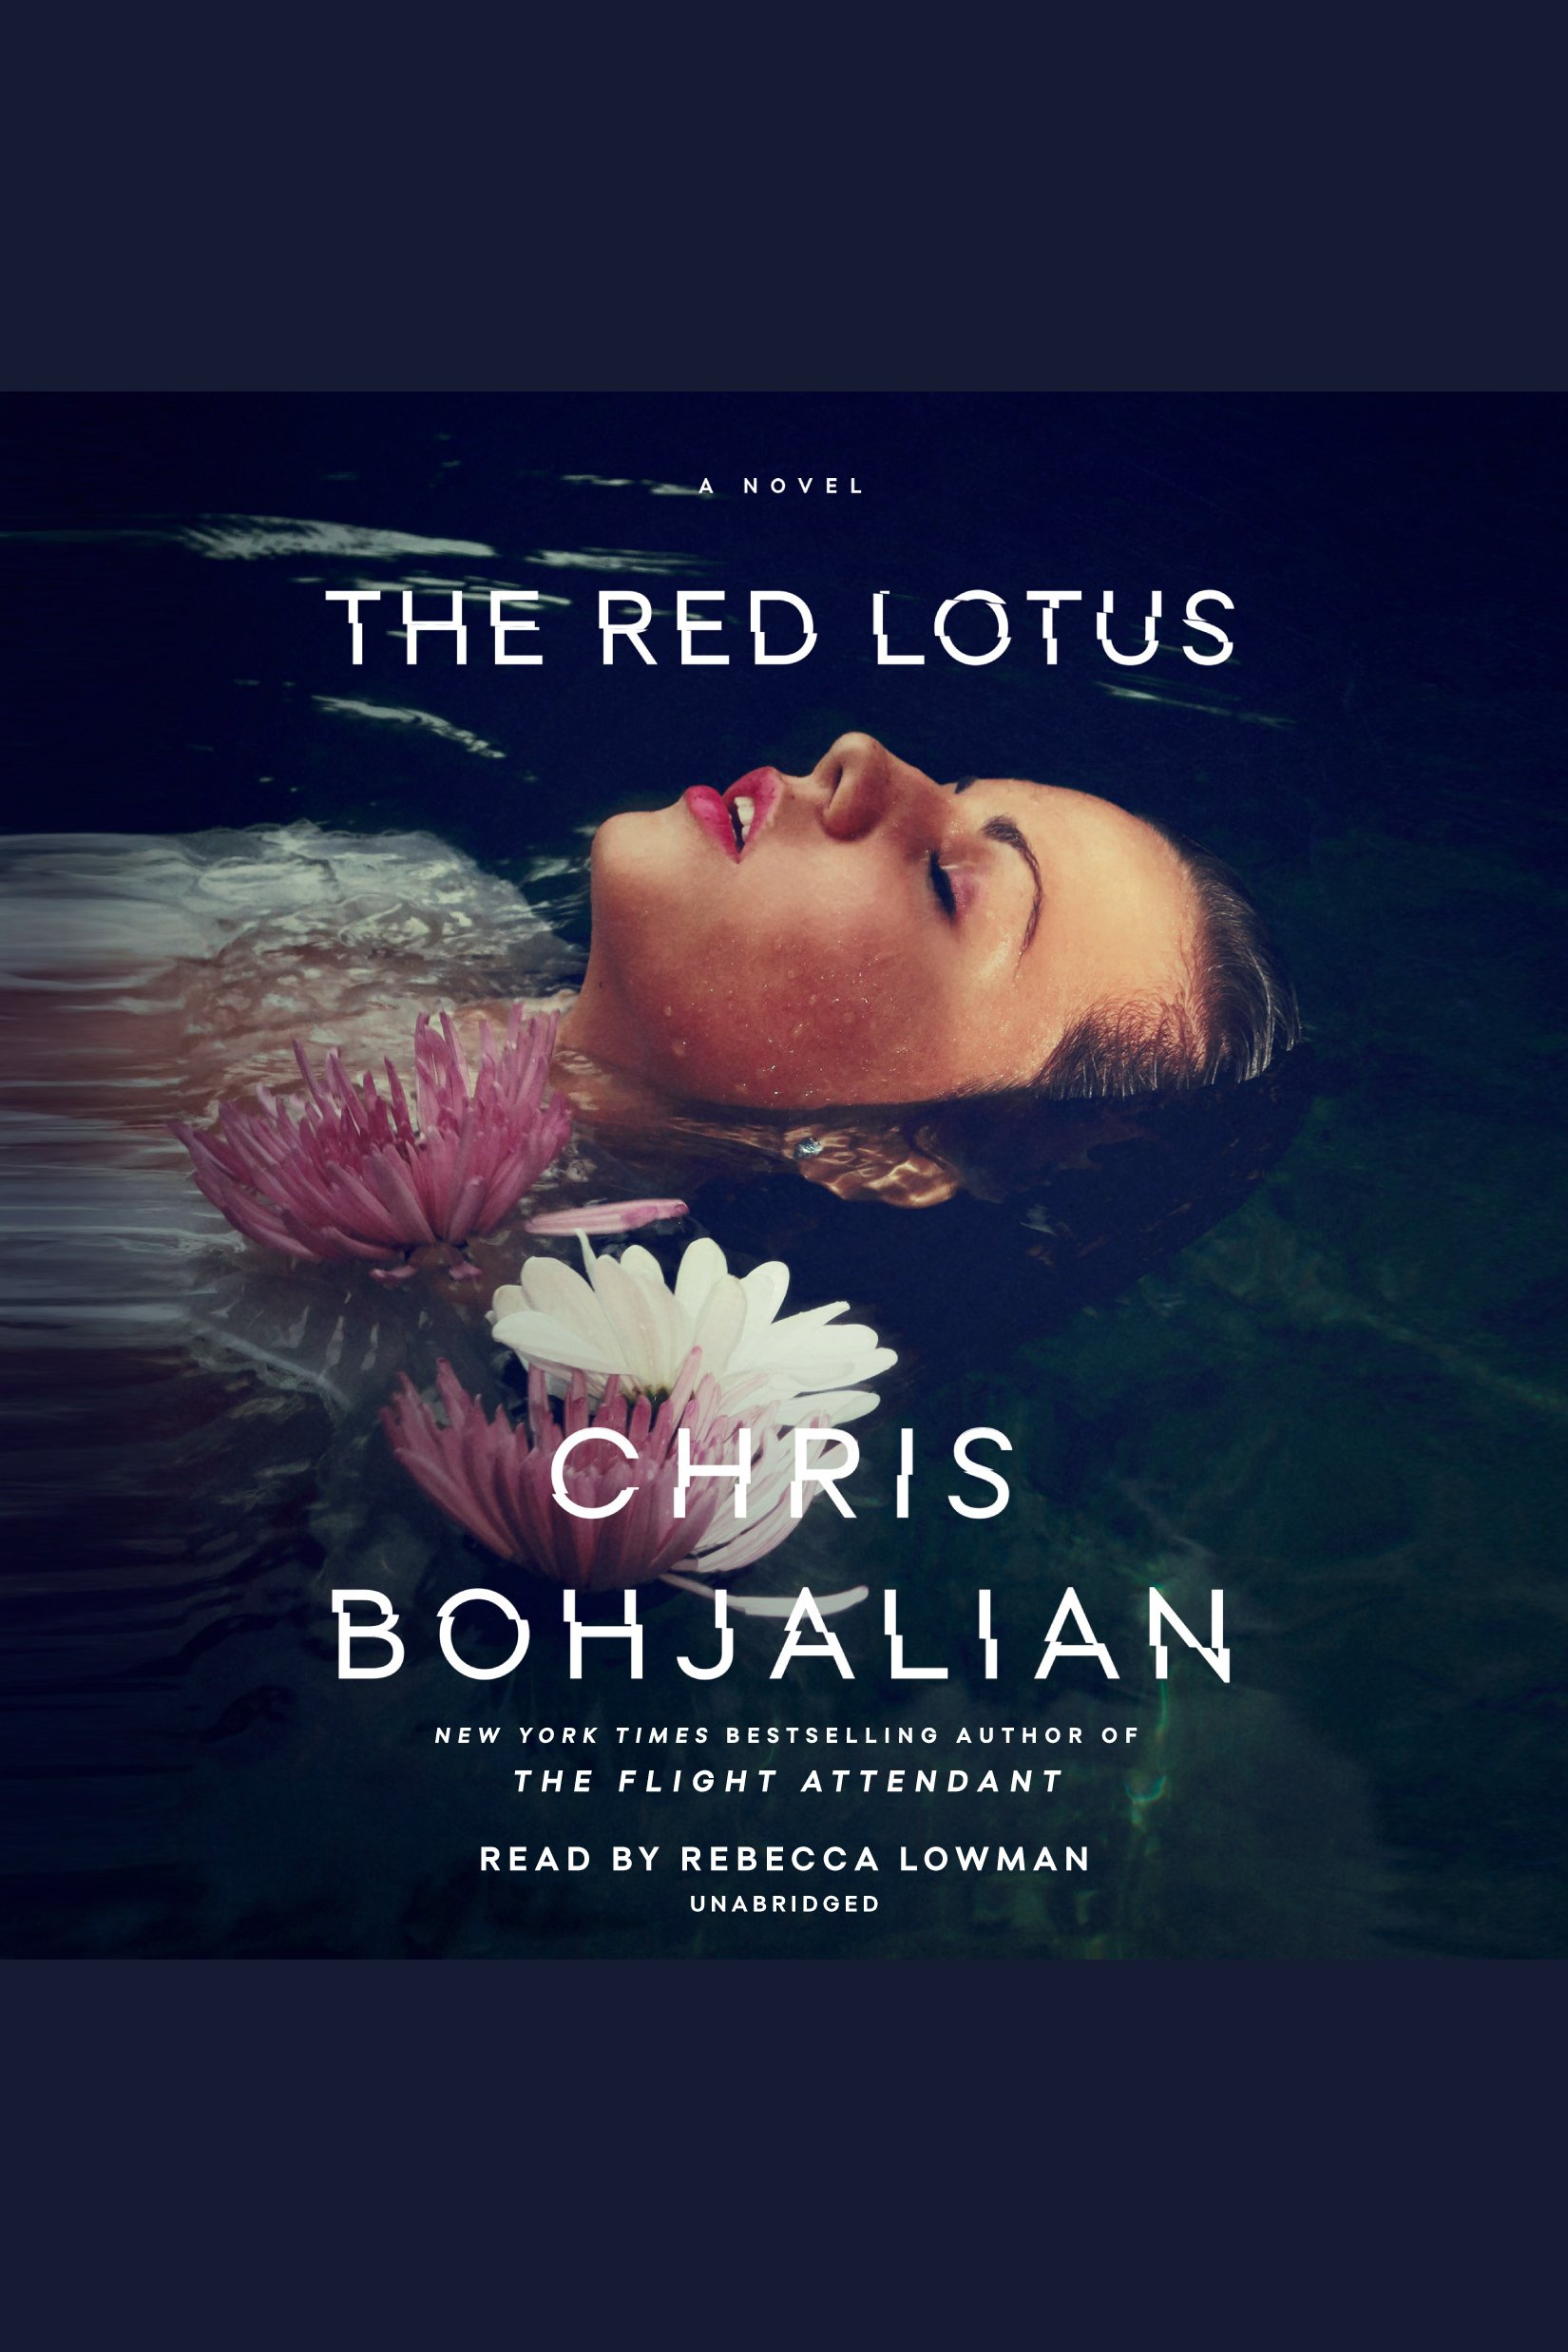 The red lotus cover image